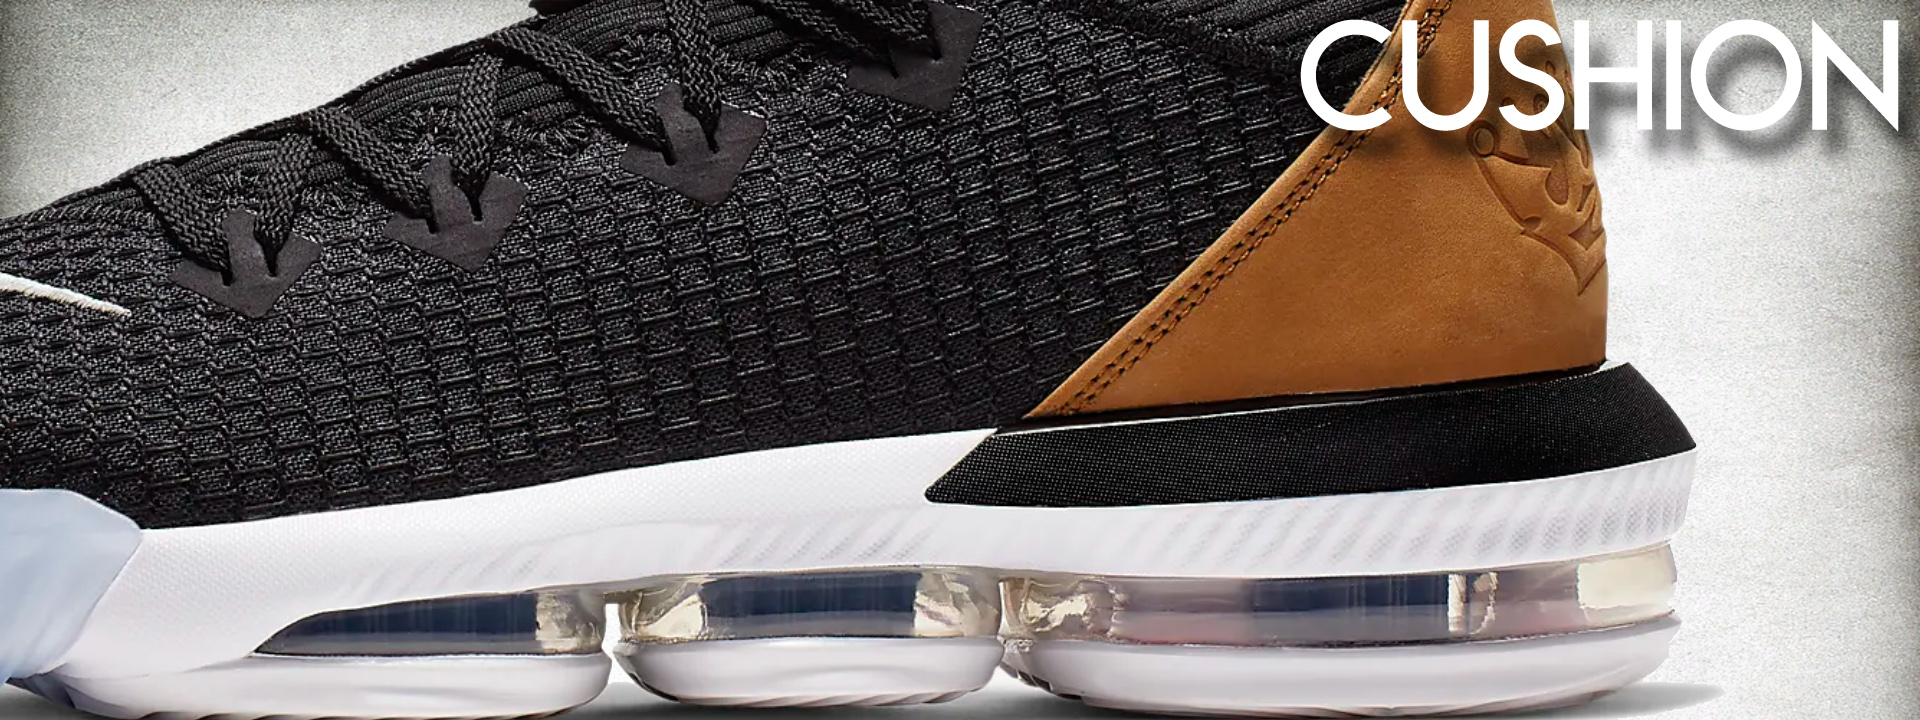 8ce94fc6bea Nike-LeBron-16-Low-Performance-Review-Cushion - WearTesters